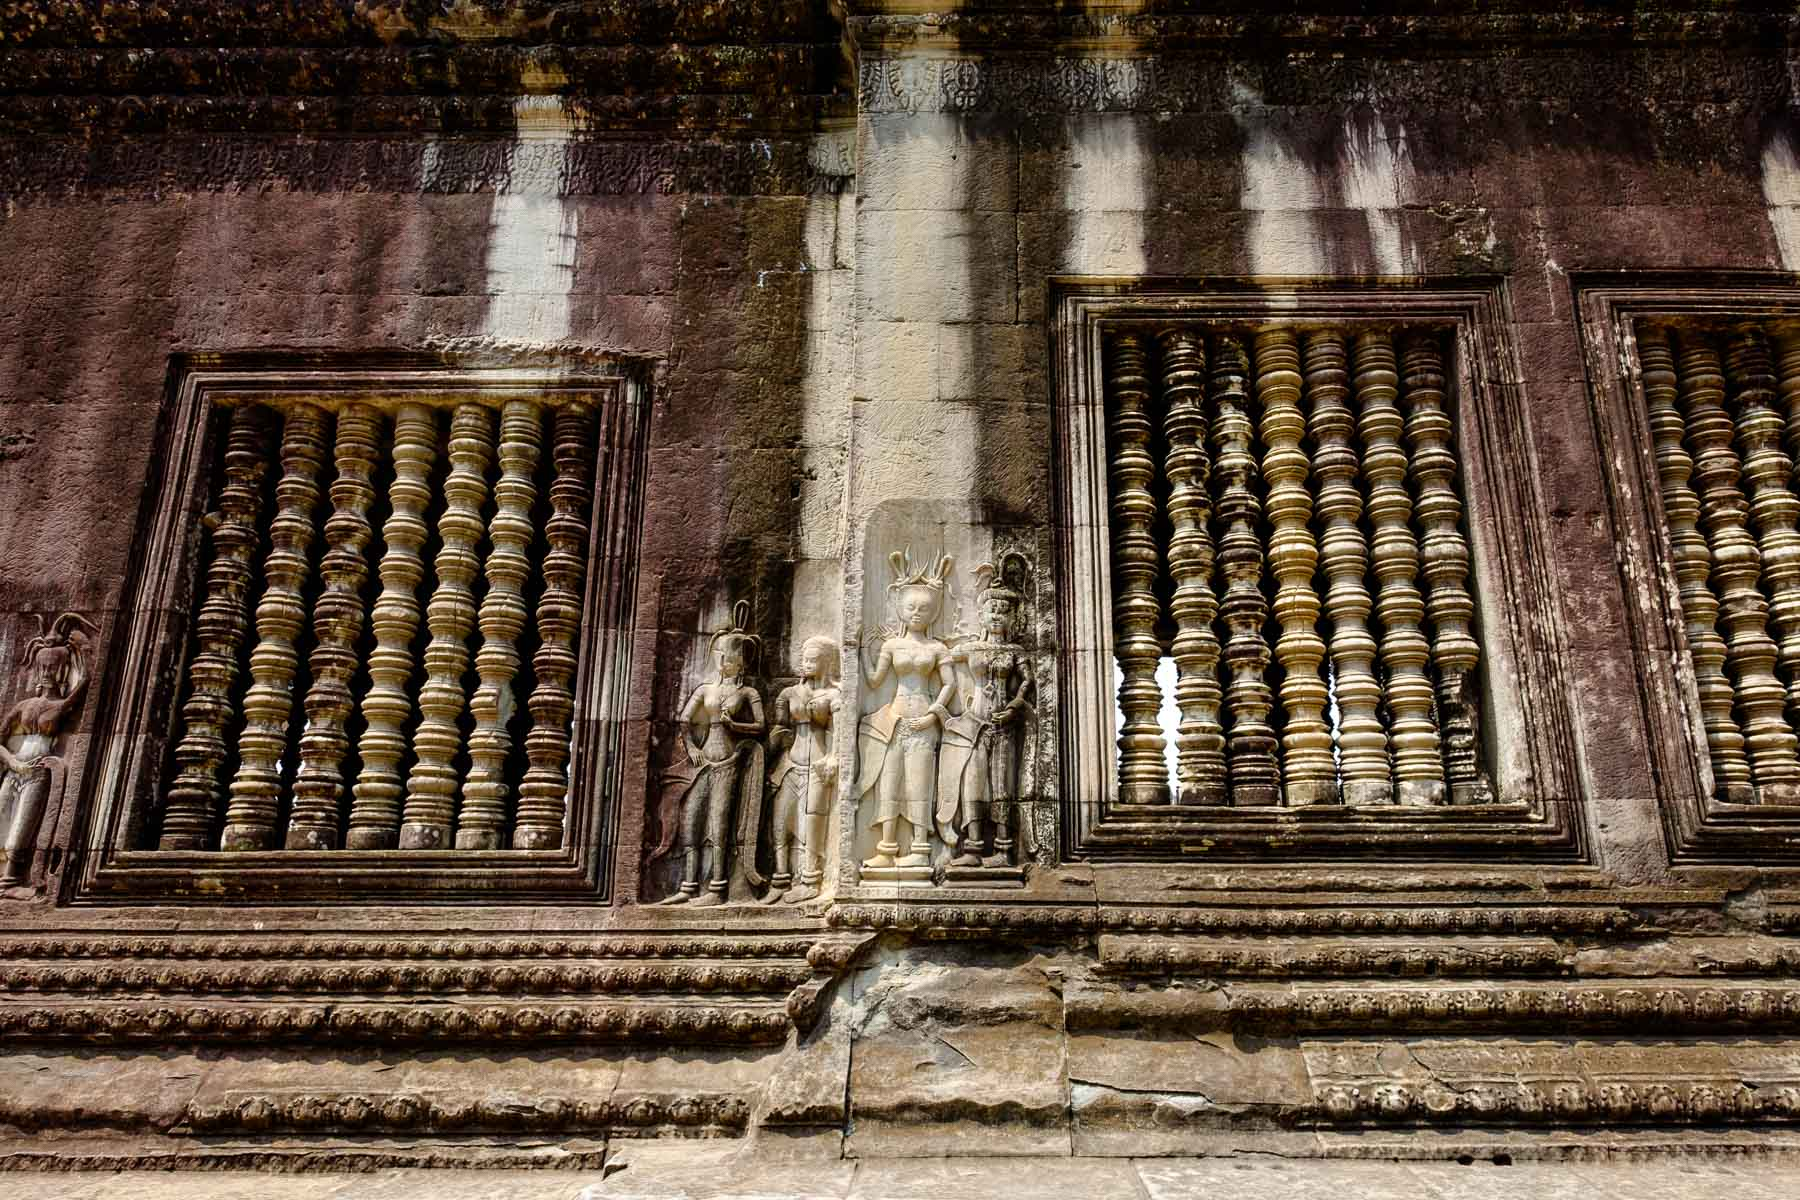 Wall sculptures and window Angkor wat Siem Reap Cambodia